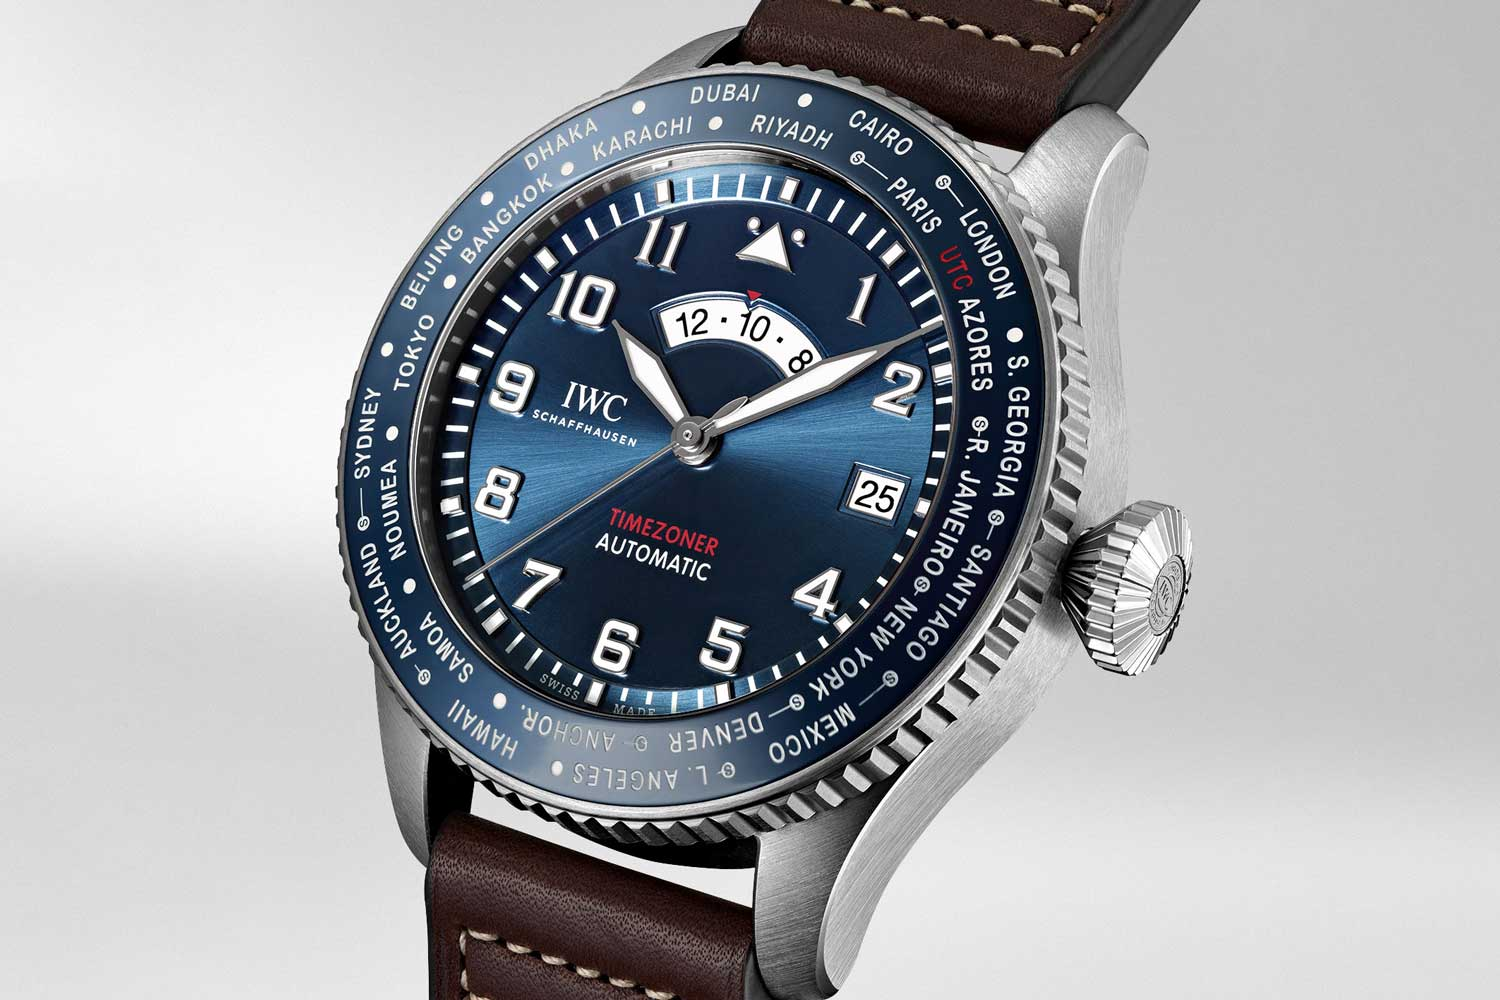 IWC Pilot's Watch Timezoner